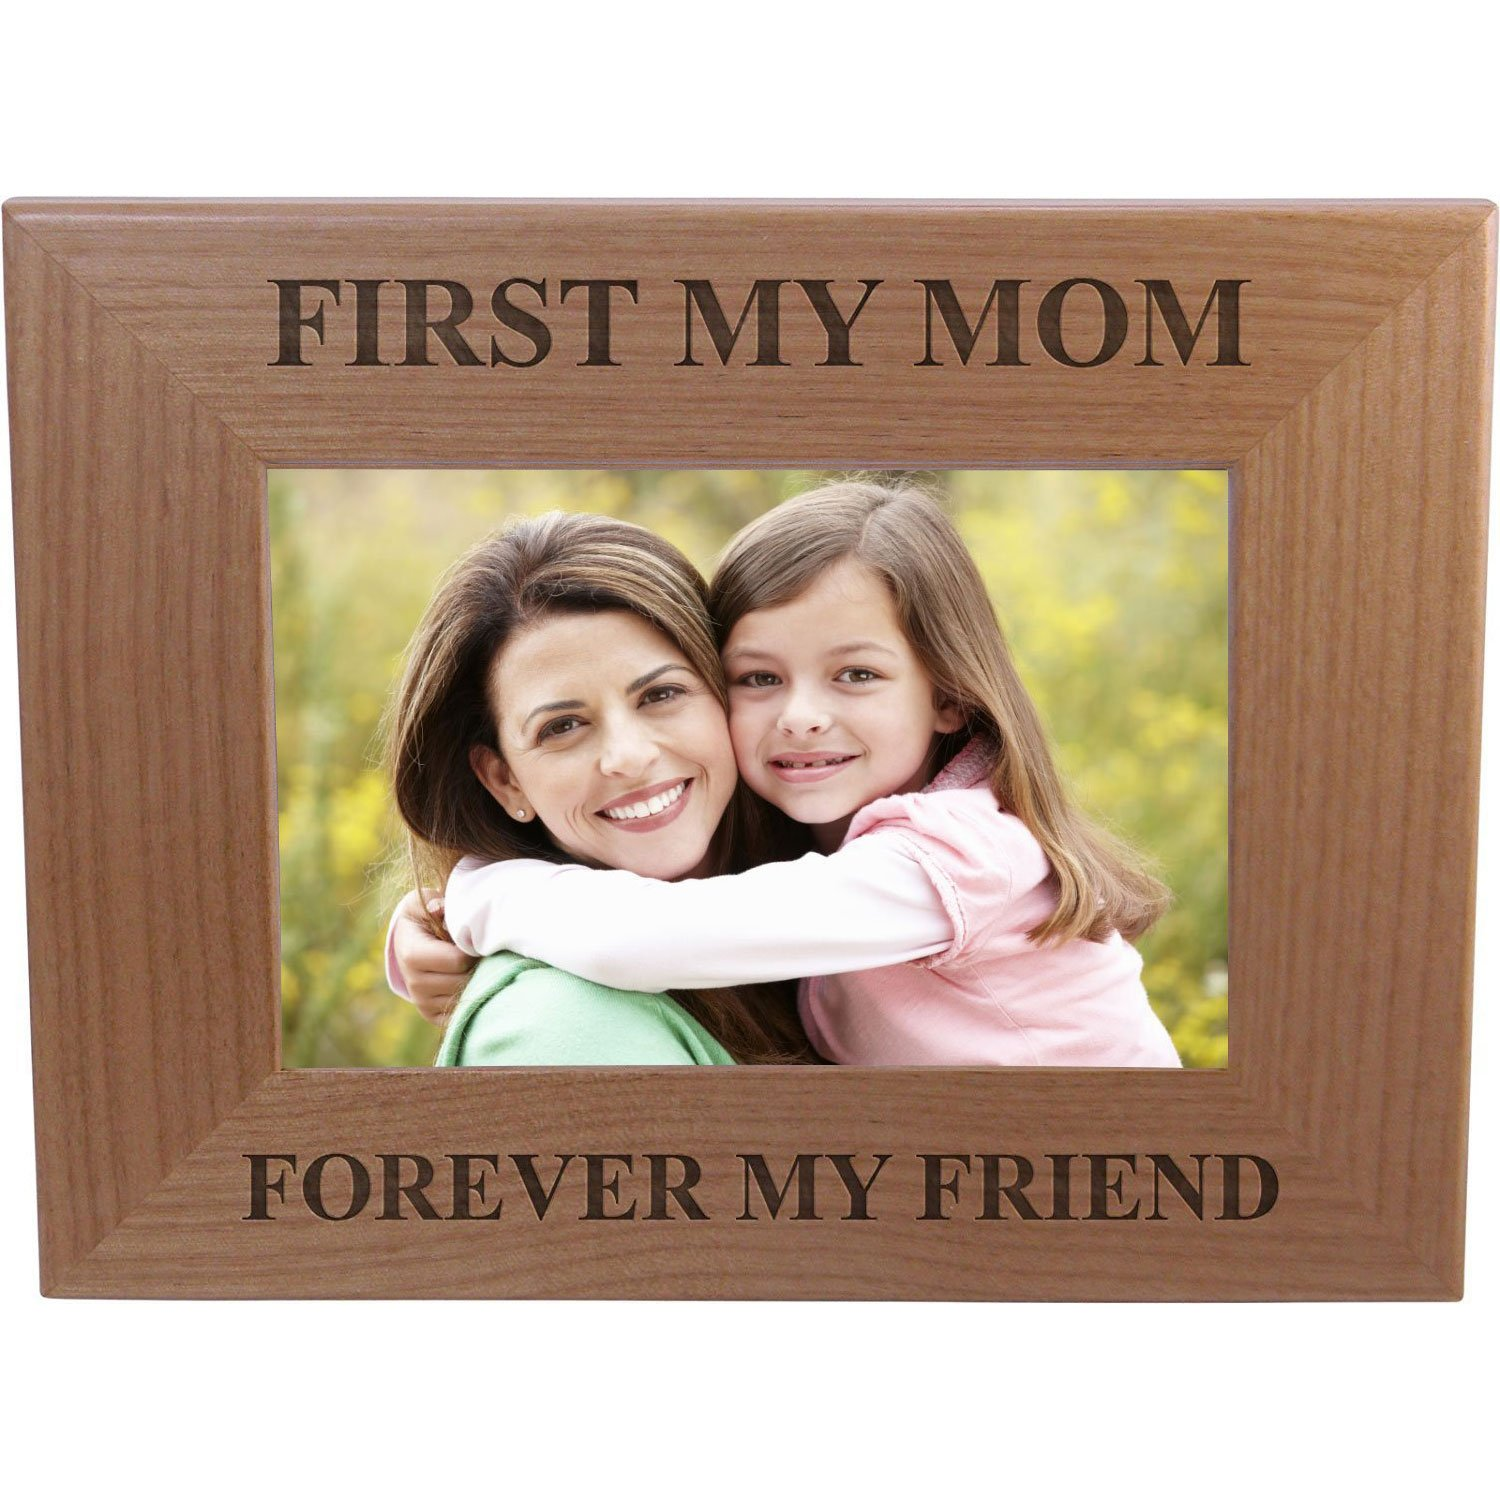 Amazon.com: First My Mom Forever My Friend 4x6 Inch Wood Picture ...